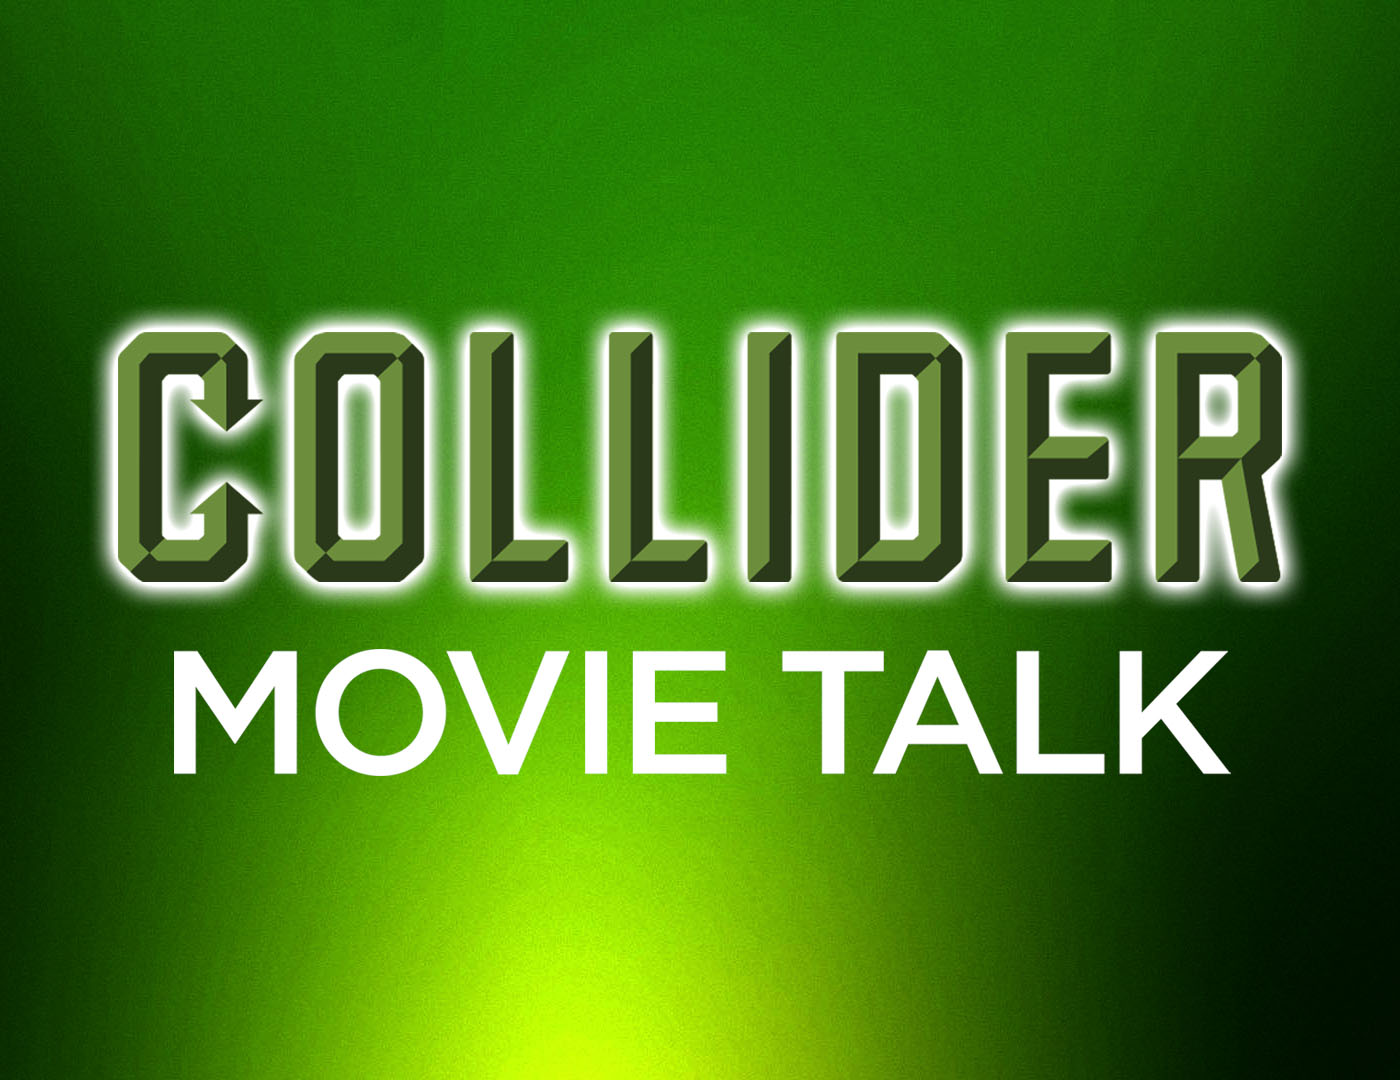 Collider Movie Talk - Is The DC Cinematic Universe In Trouble?